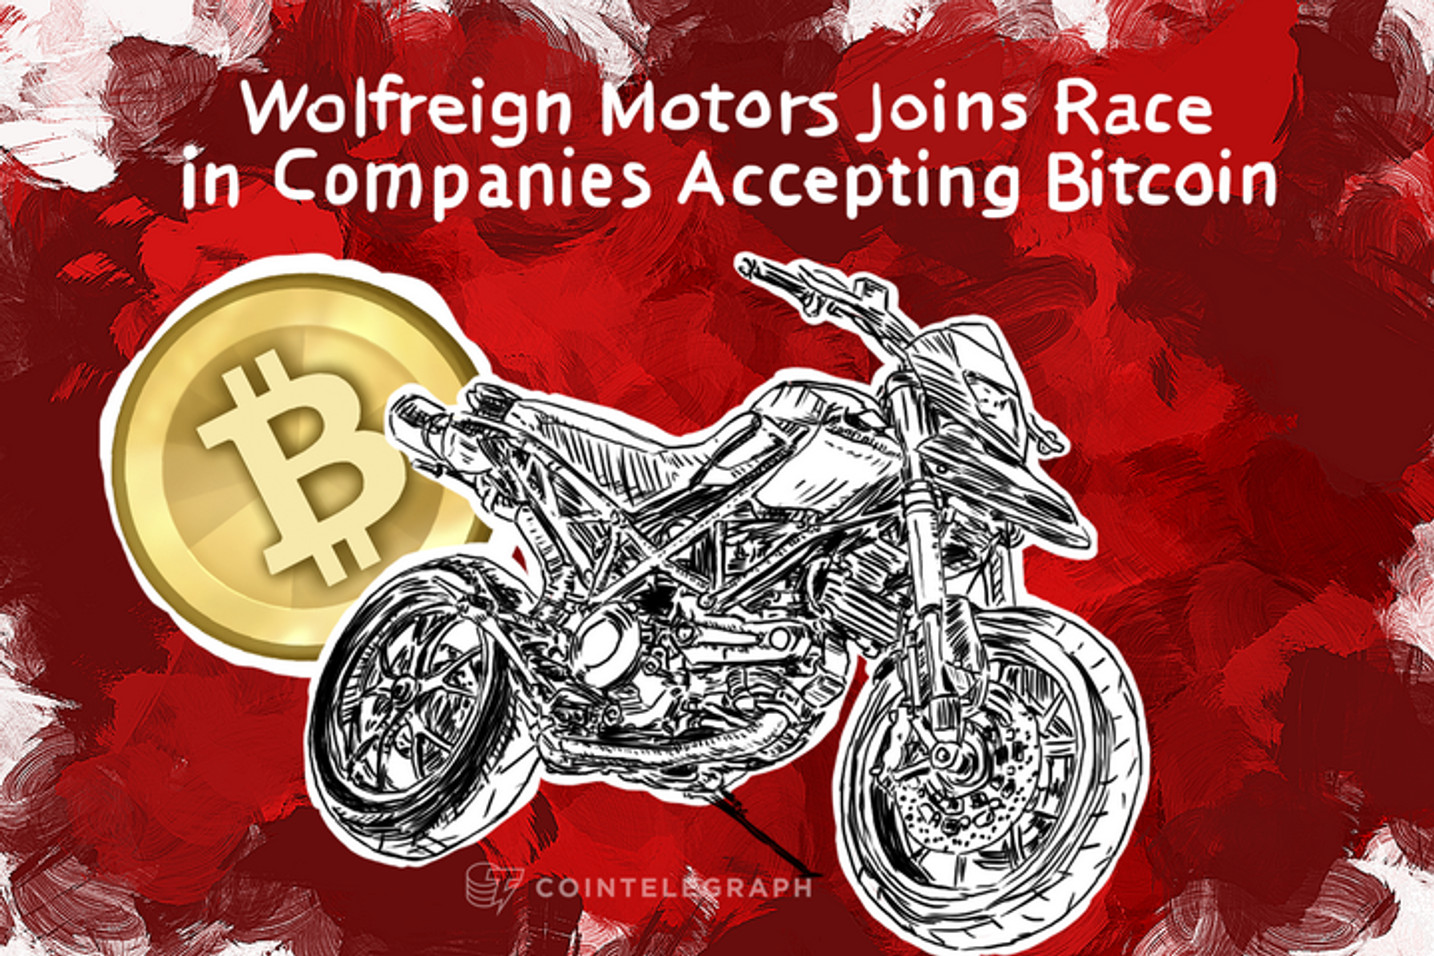 Wolfreign Motors Joins Race in Companies Accepting Bitcoin